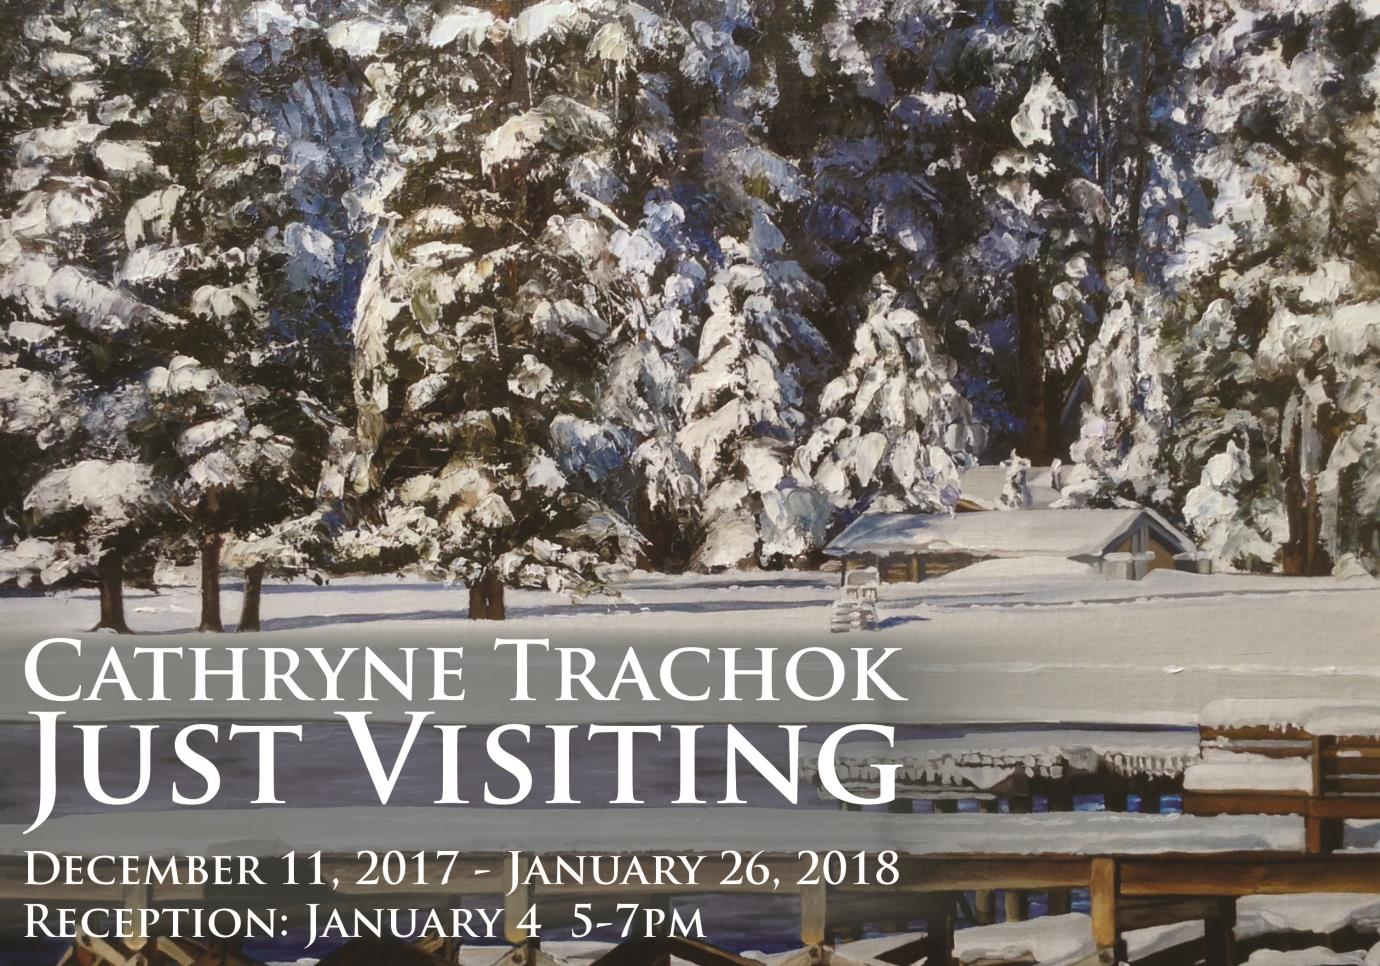 Painting of snow covered trees with a frozen lake and dock, Cathryne Trachok Just visiting, December 11 - January 26, 2018, Artist Reception: January 4, 5-7 pm